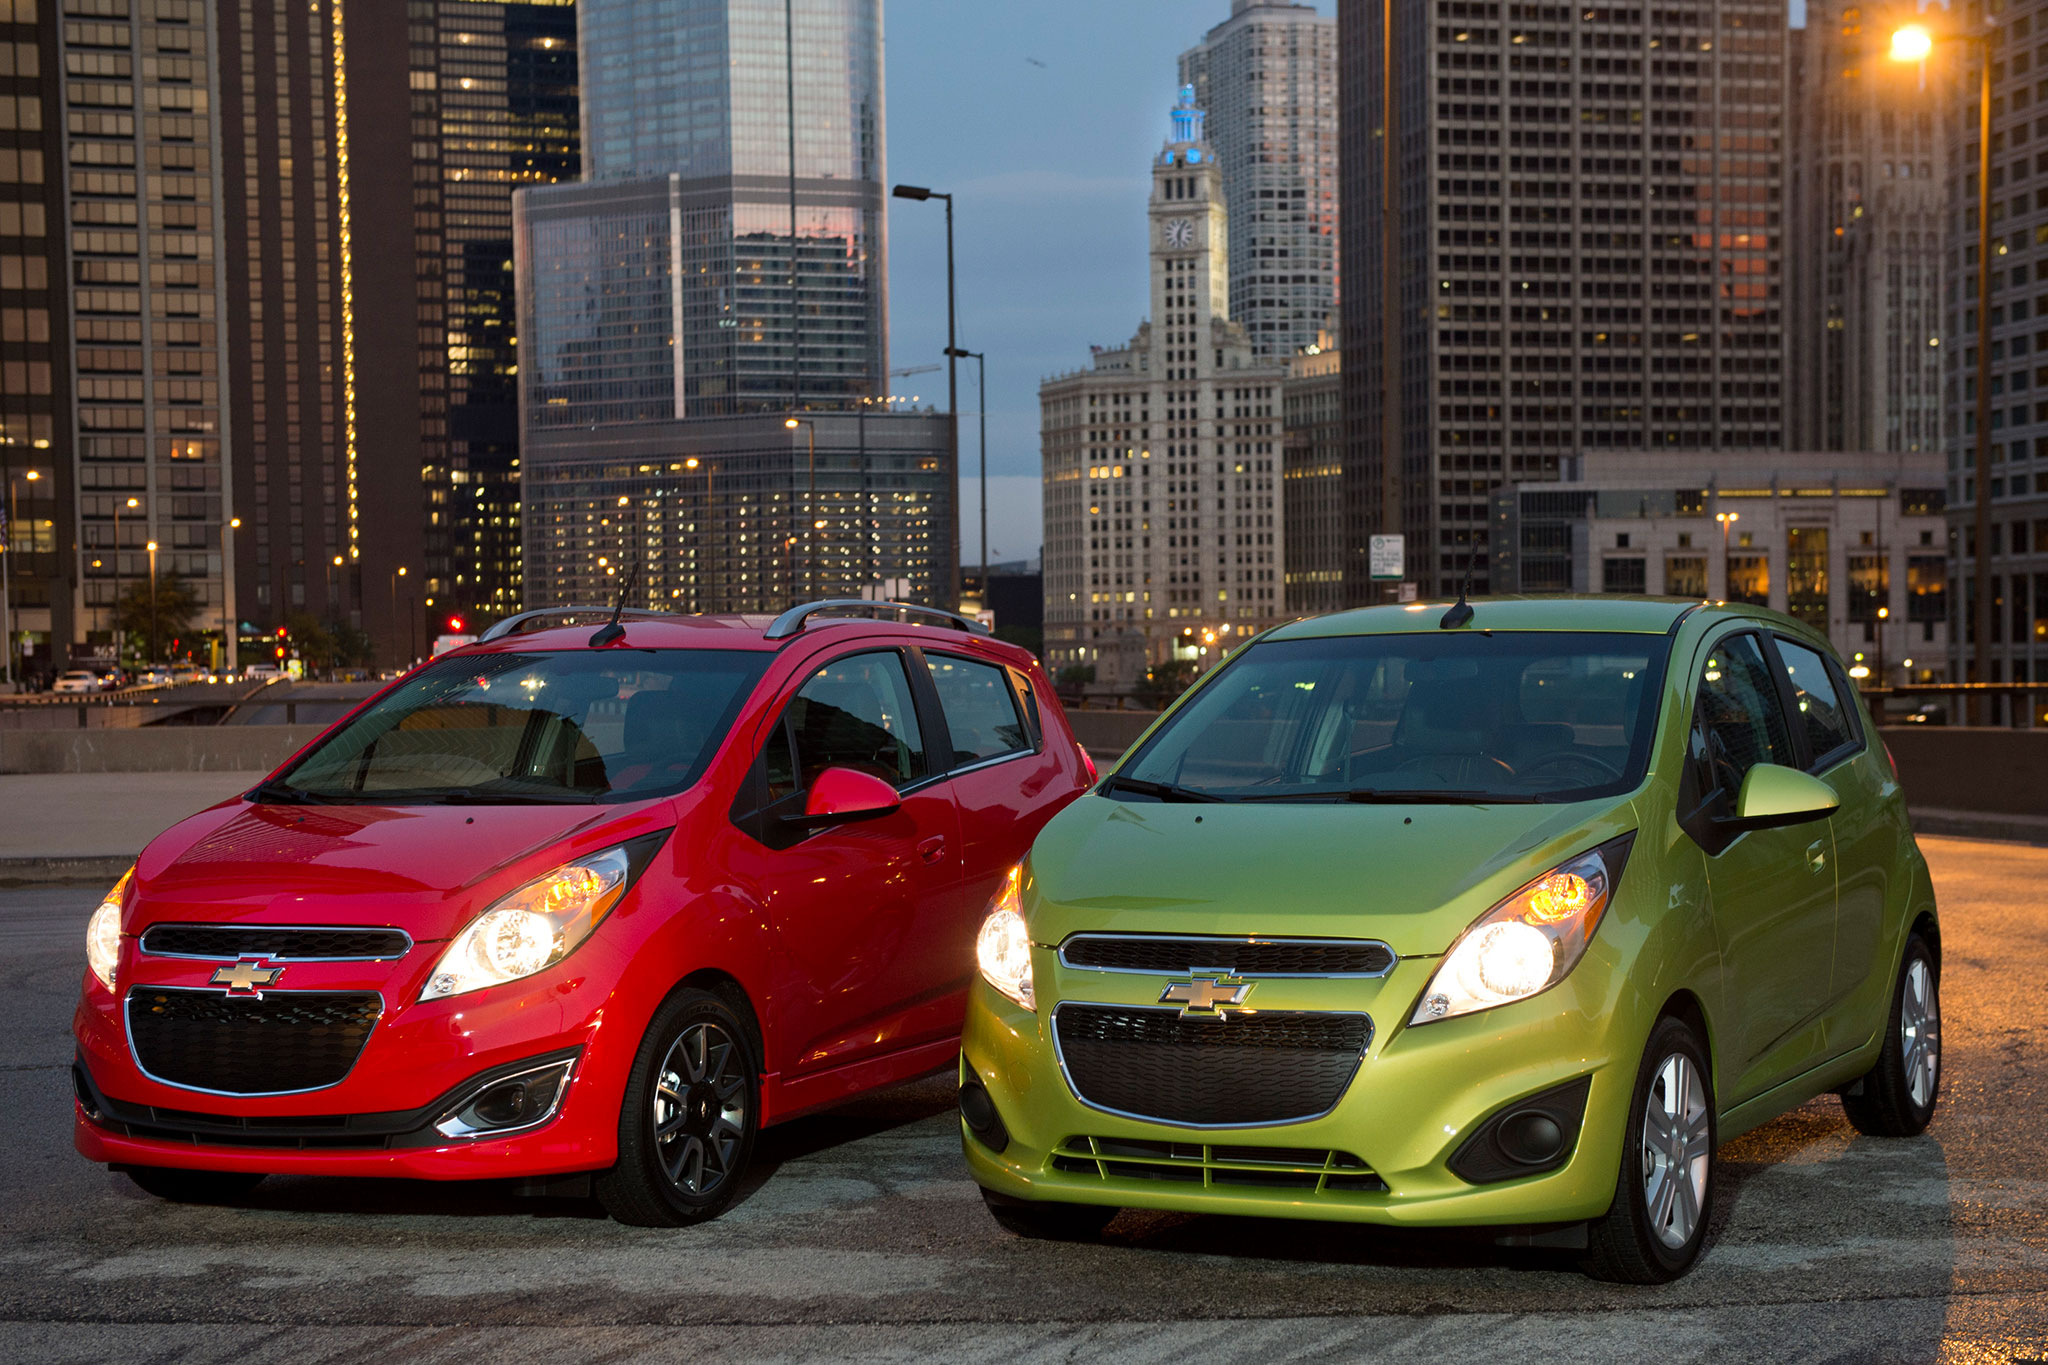 2014 Chevrolet Spark Front View 11